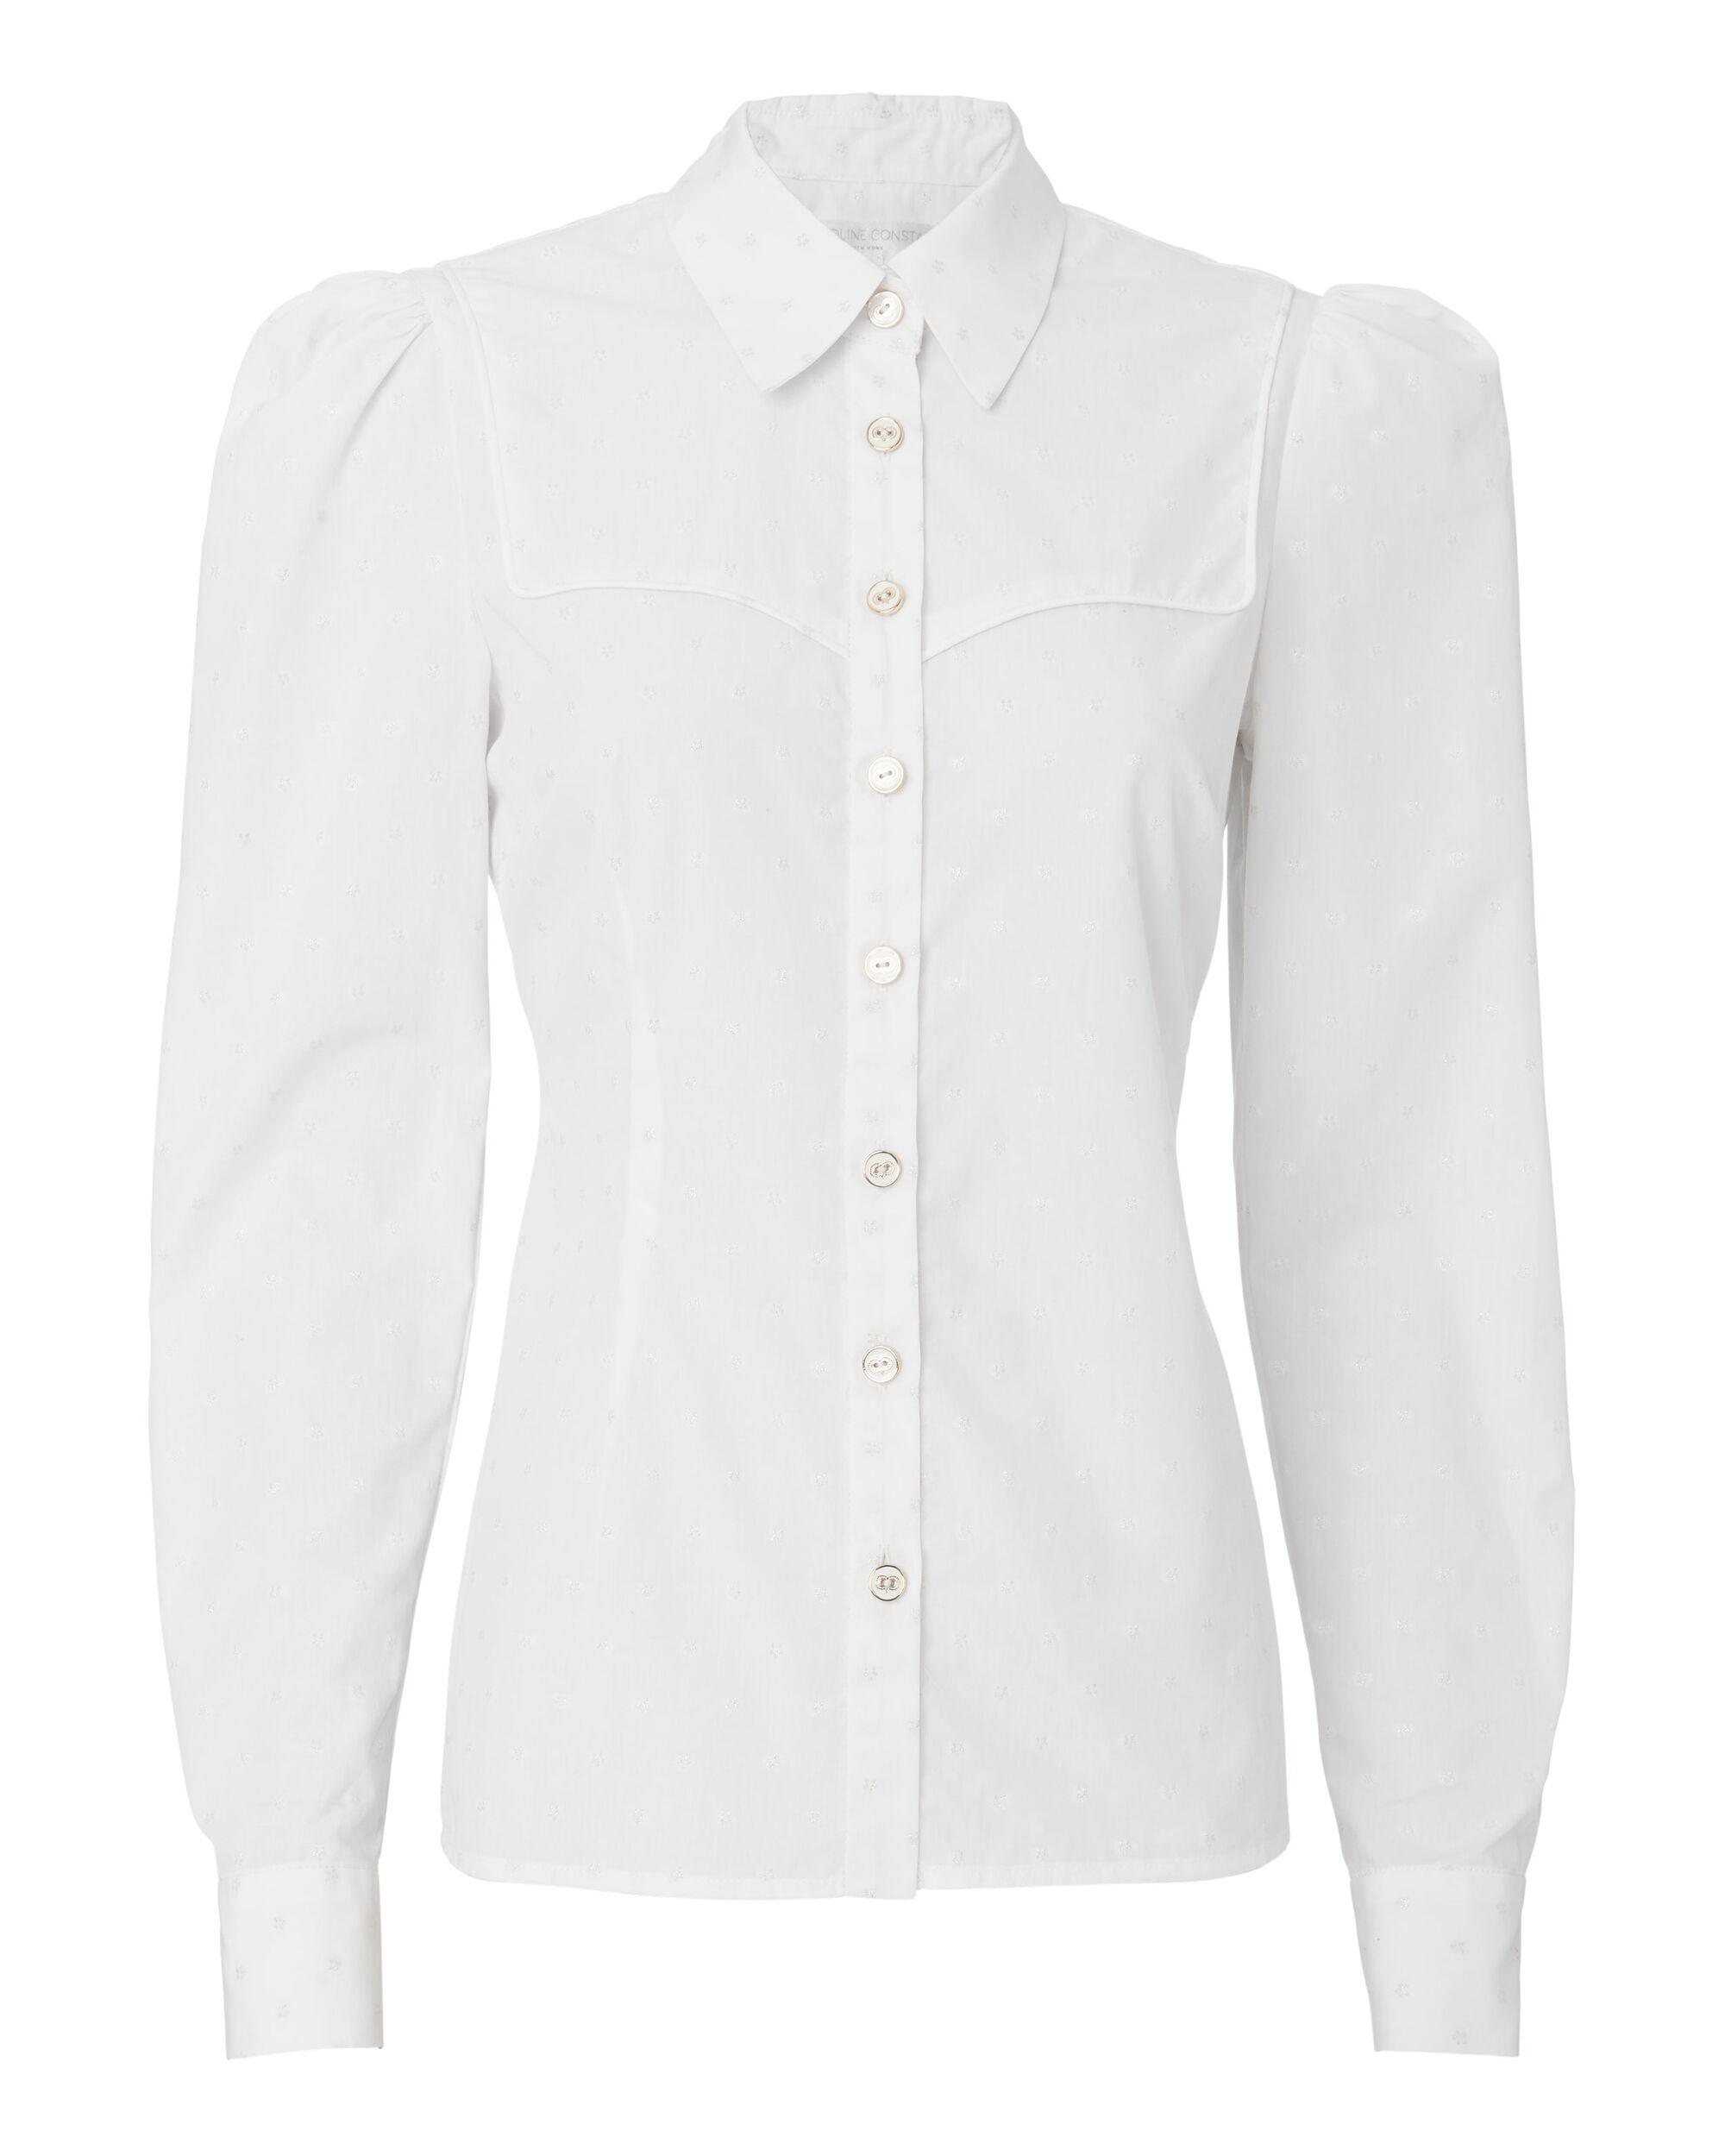 Clementine Shirt, WHITE, hi-res